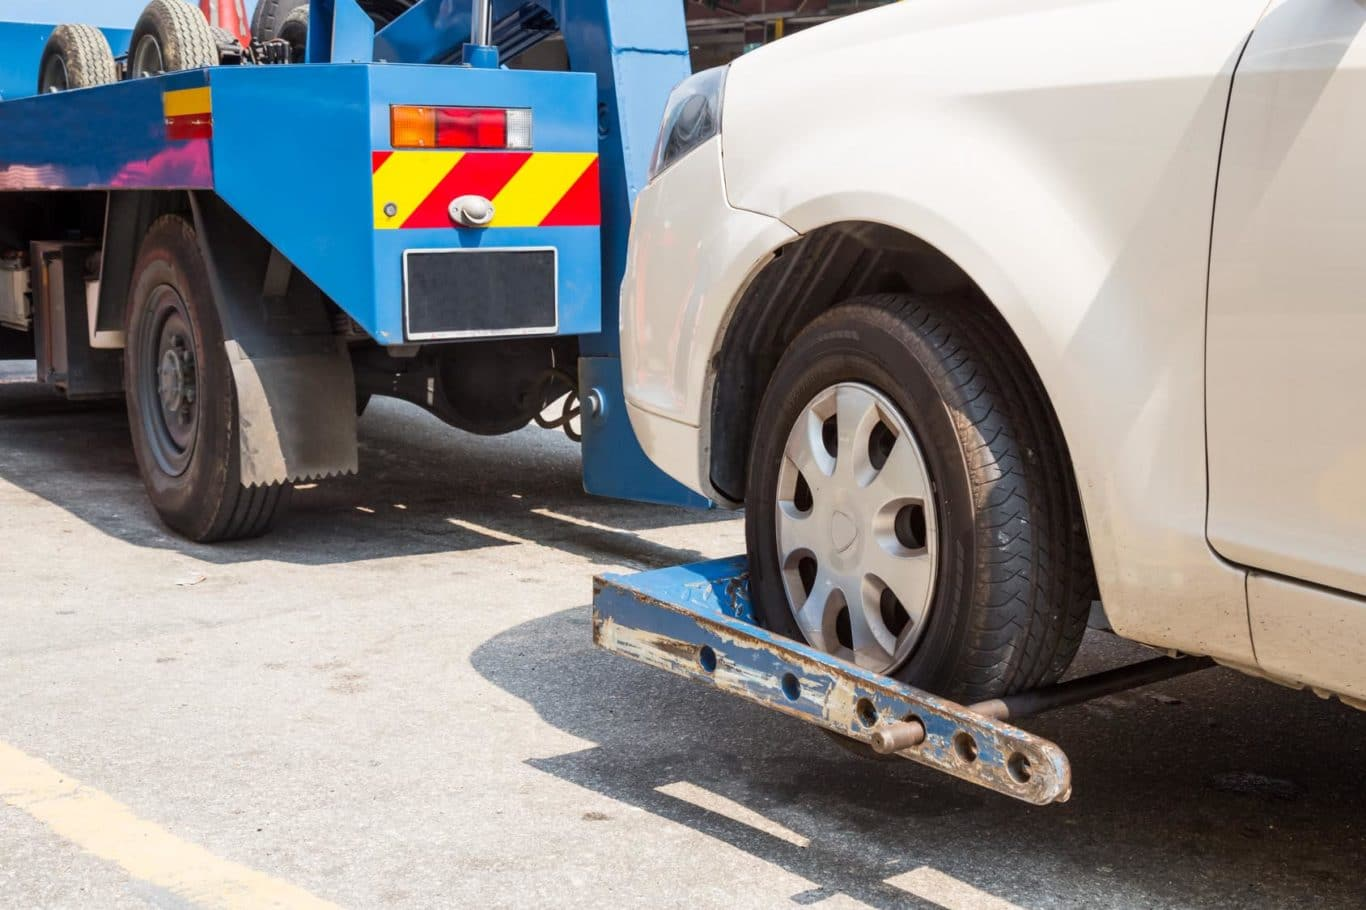 Carrickmines expert Breakdown Recovery services